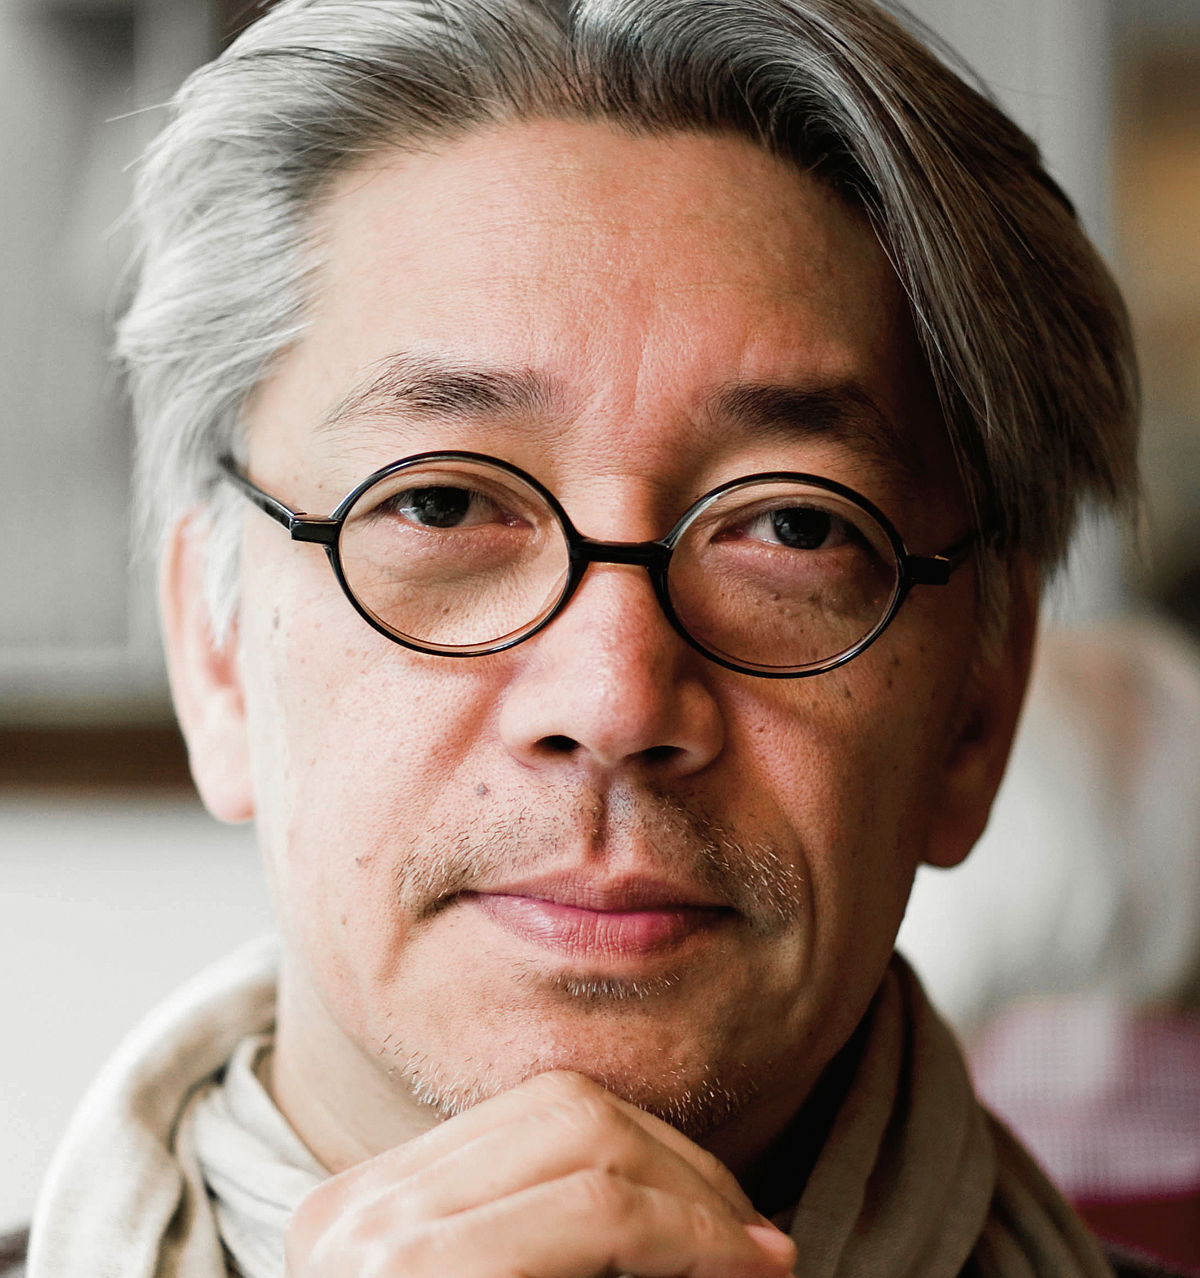 Ryuichi sakamoto further Yes Time And A Word 1970 Survival From The Debut Album 1969 additionally Mary Poppins Returns To Tv What You Dont Know About The Walt Disney Movie in addition Australia David Hirschfelder further Soundtrack For Bbcs The Hunt Announced. on academy award for original music score